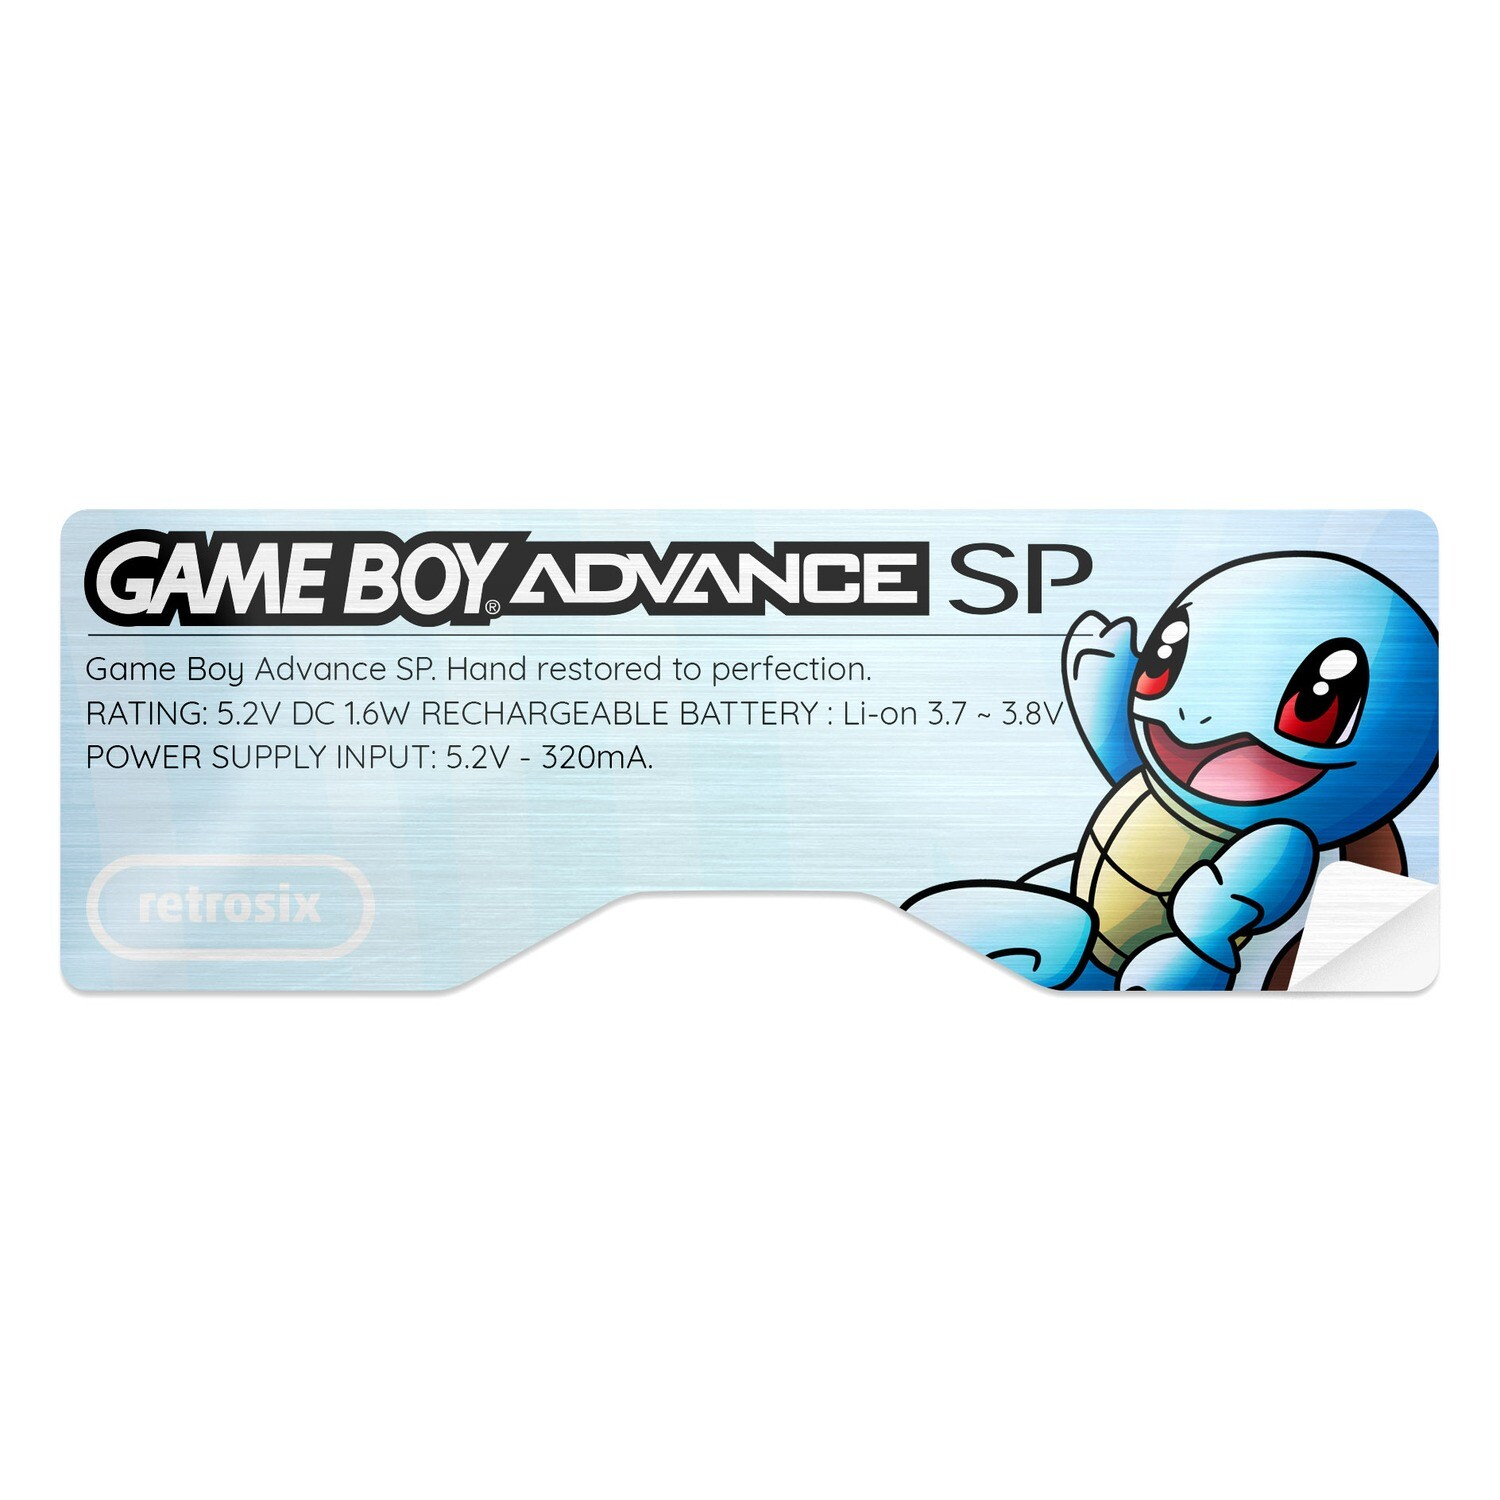 Game Boy Advance SP Sticker (Squirtle)